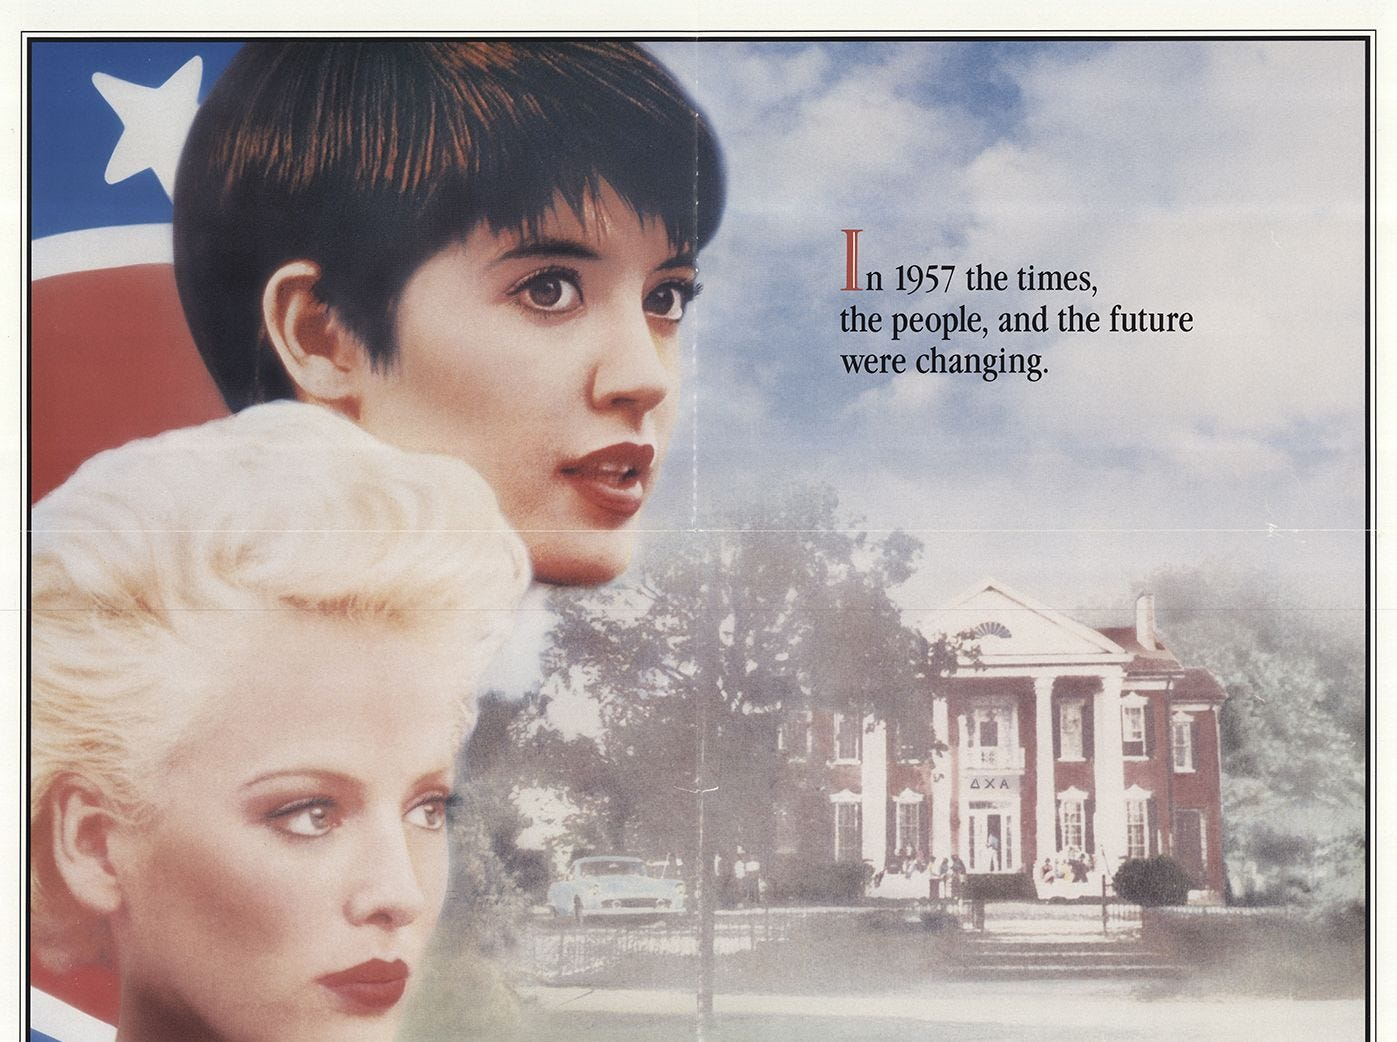 """Heart of Dixie"" (1989) - In segregated 1957 Alabama, three sorority sisters experience integration while looking for love. The movie stars Ally Sheedy, Virginia Madsen and Phoebe Cates.  It received one Razzie Award nomination."